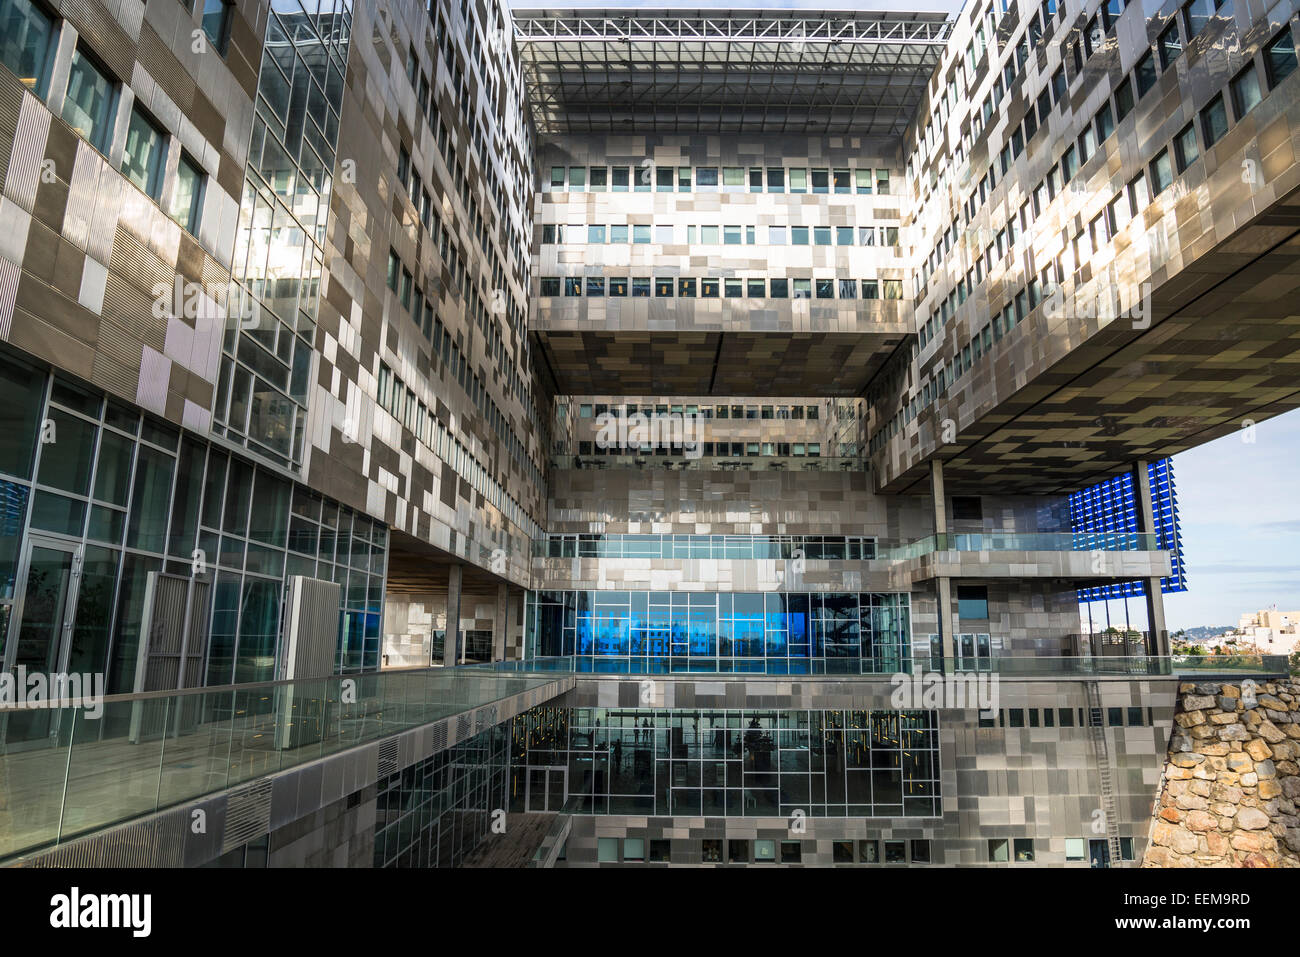 New hotel de ville city hall architect jean nouvel montpellier stock photo - Hotel de ville montpellier jean nouvel ...